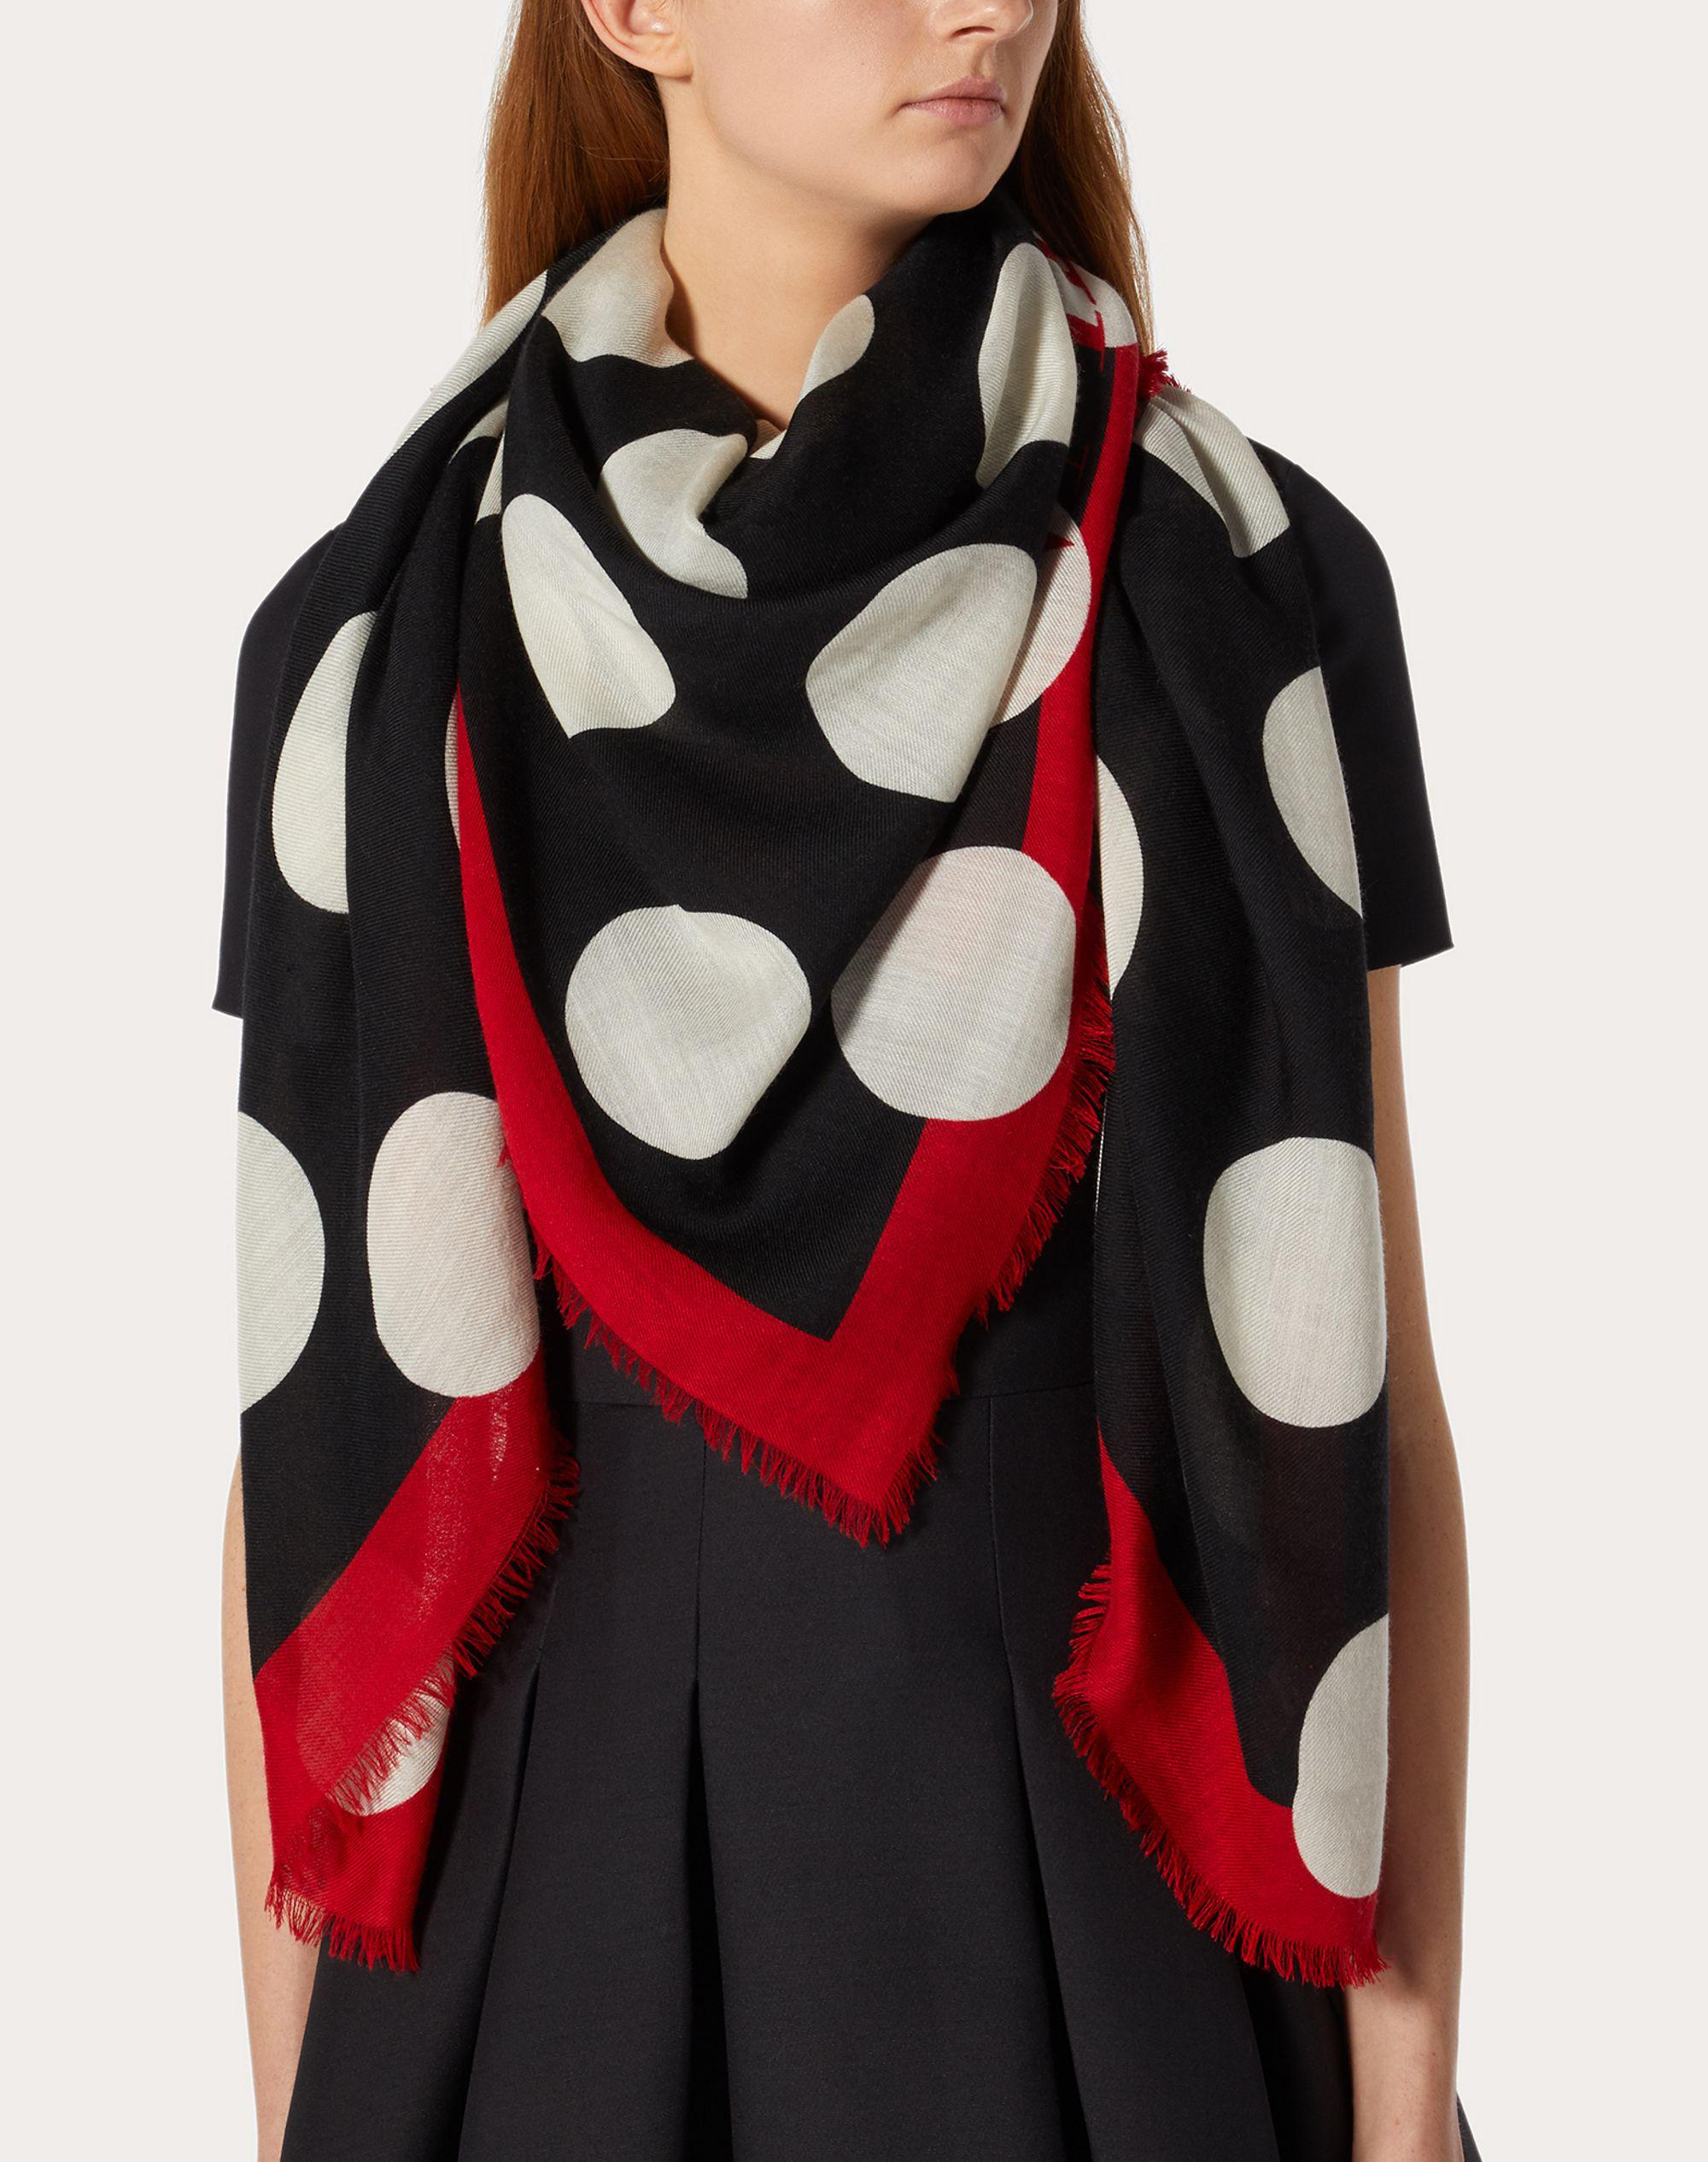 Dots print cashmere and silk shawl 140x140 cm / 55.1x55.1 in. 3